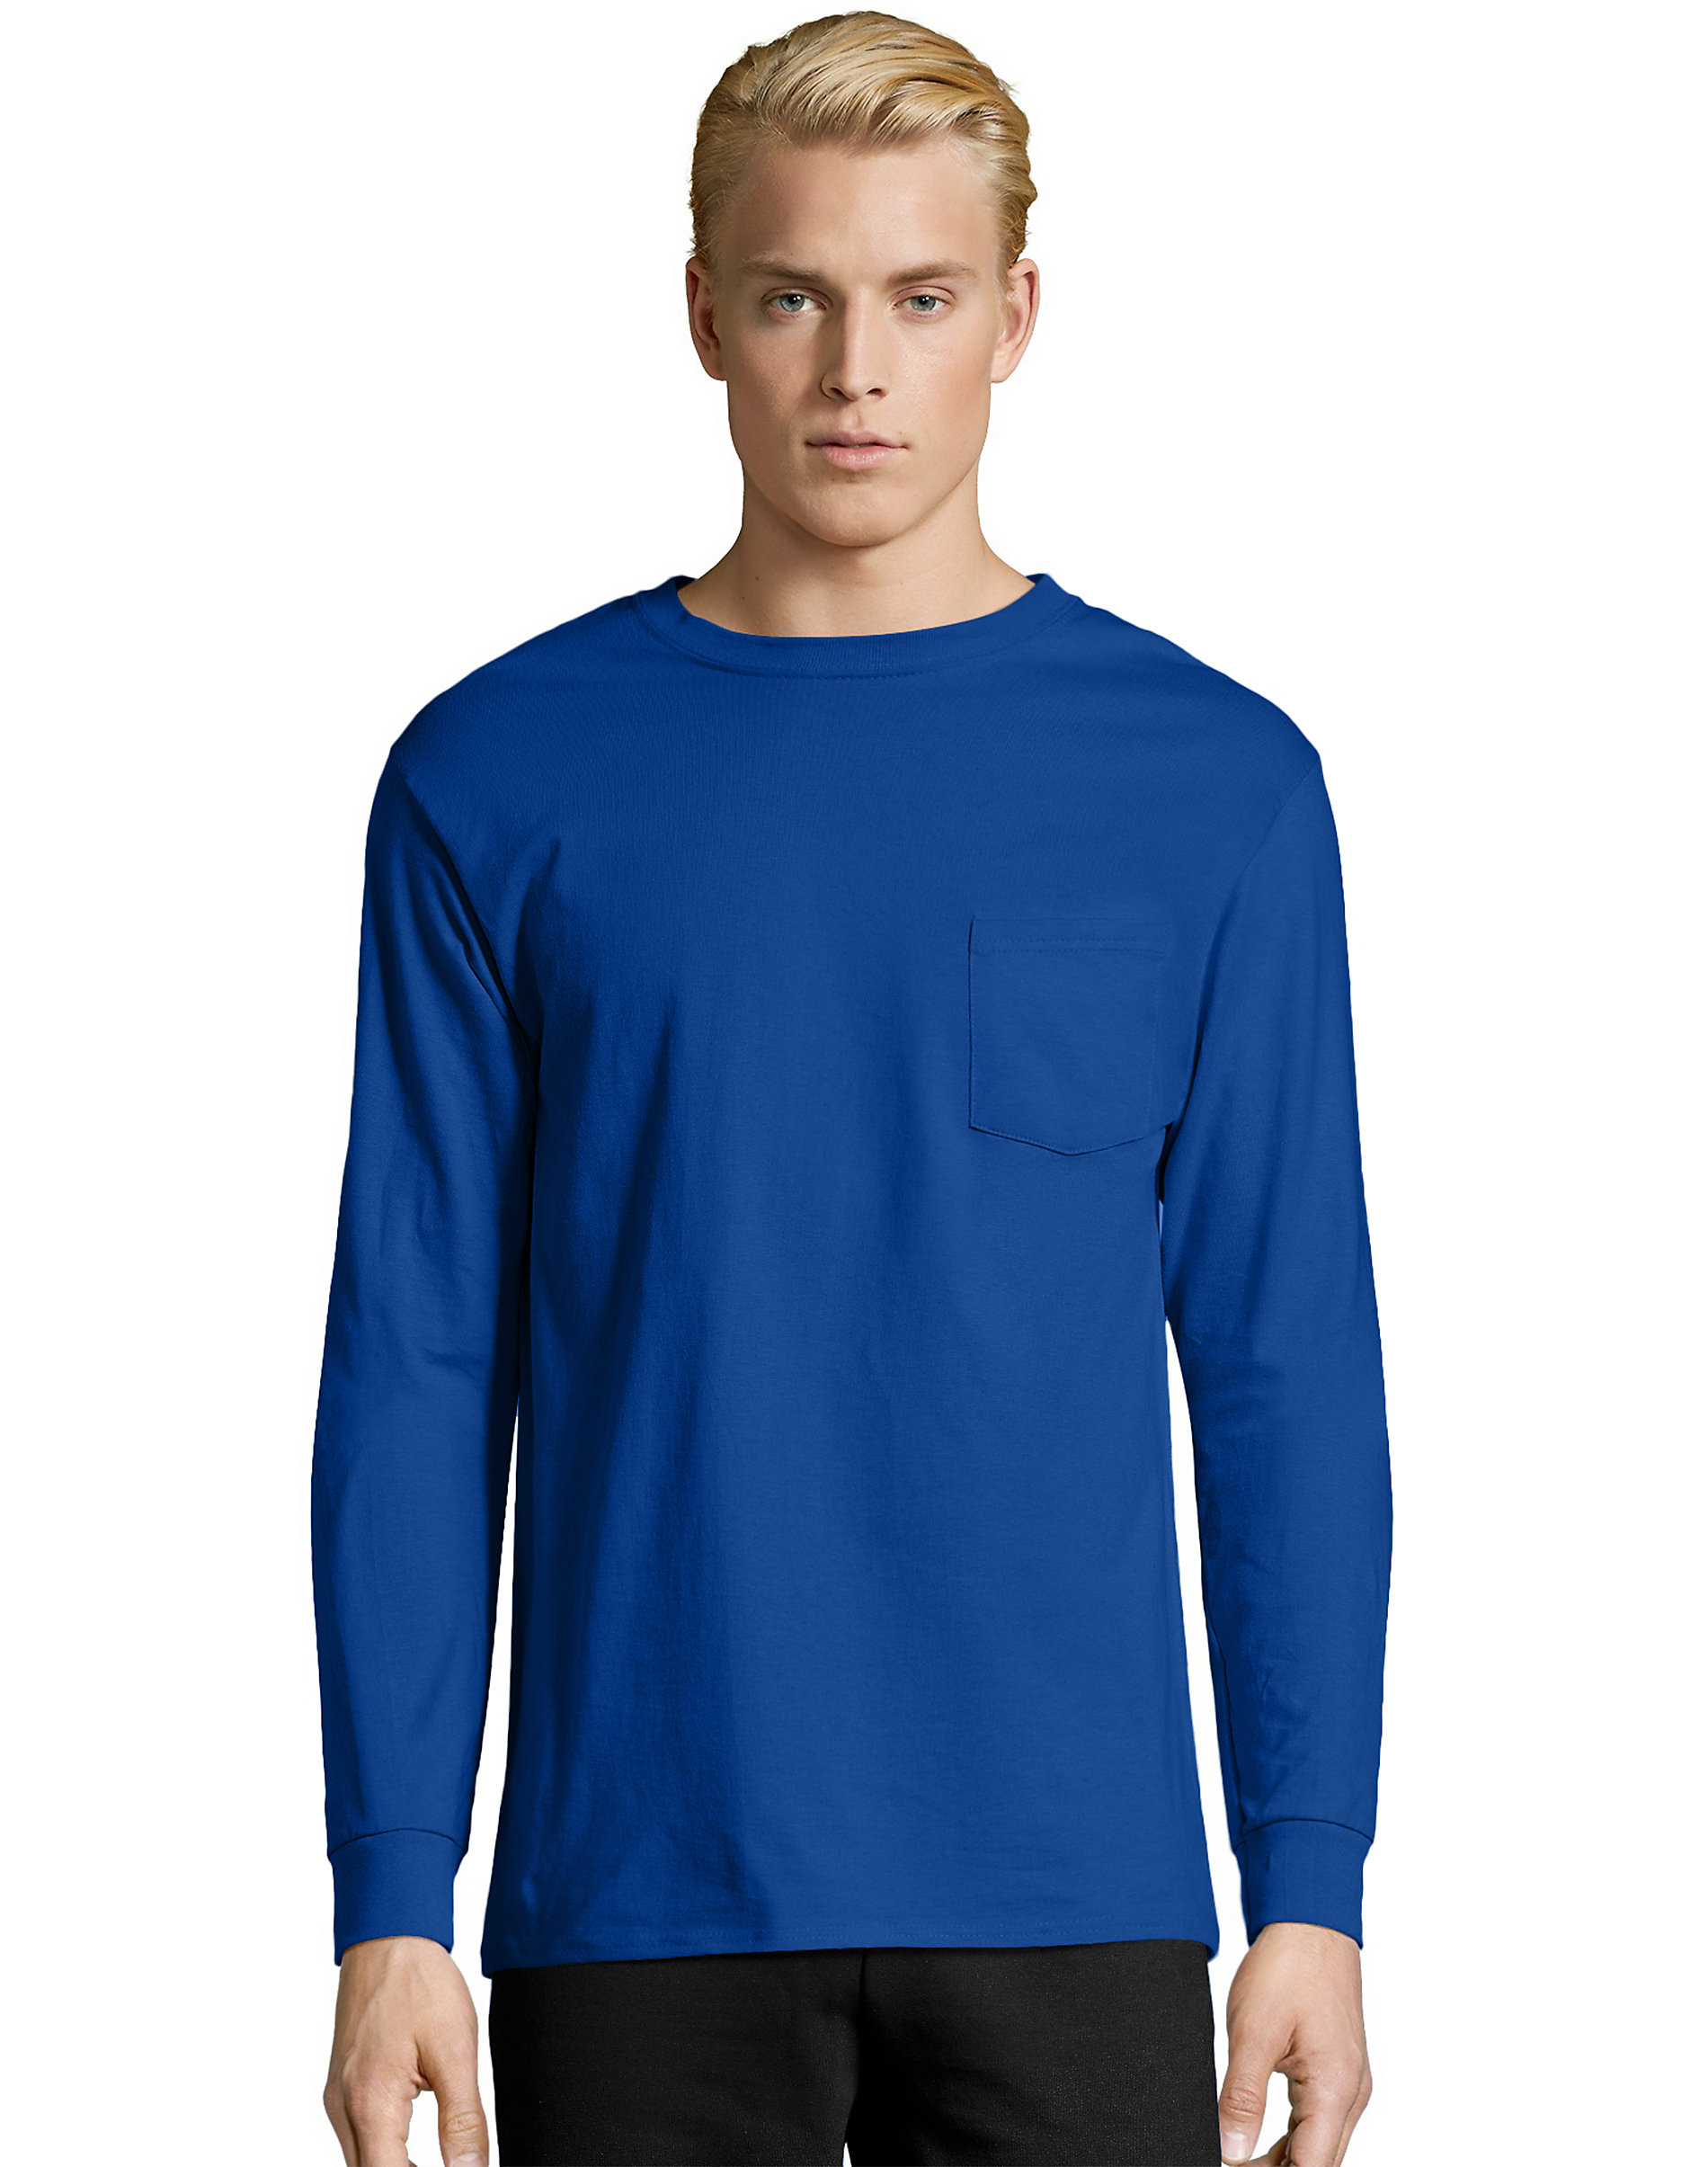 Hanes-Long-Sleeve-T-Shirt-with-a-Pocket-Mens-TAGLESS-Cotton-S-3XL-11-Colors-5596